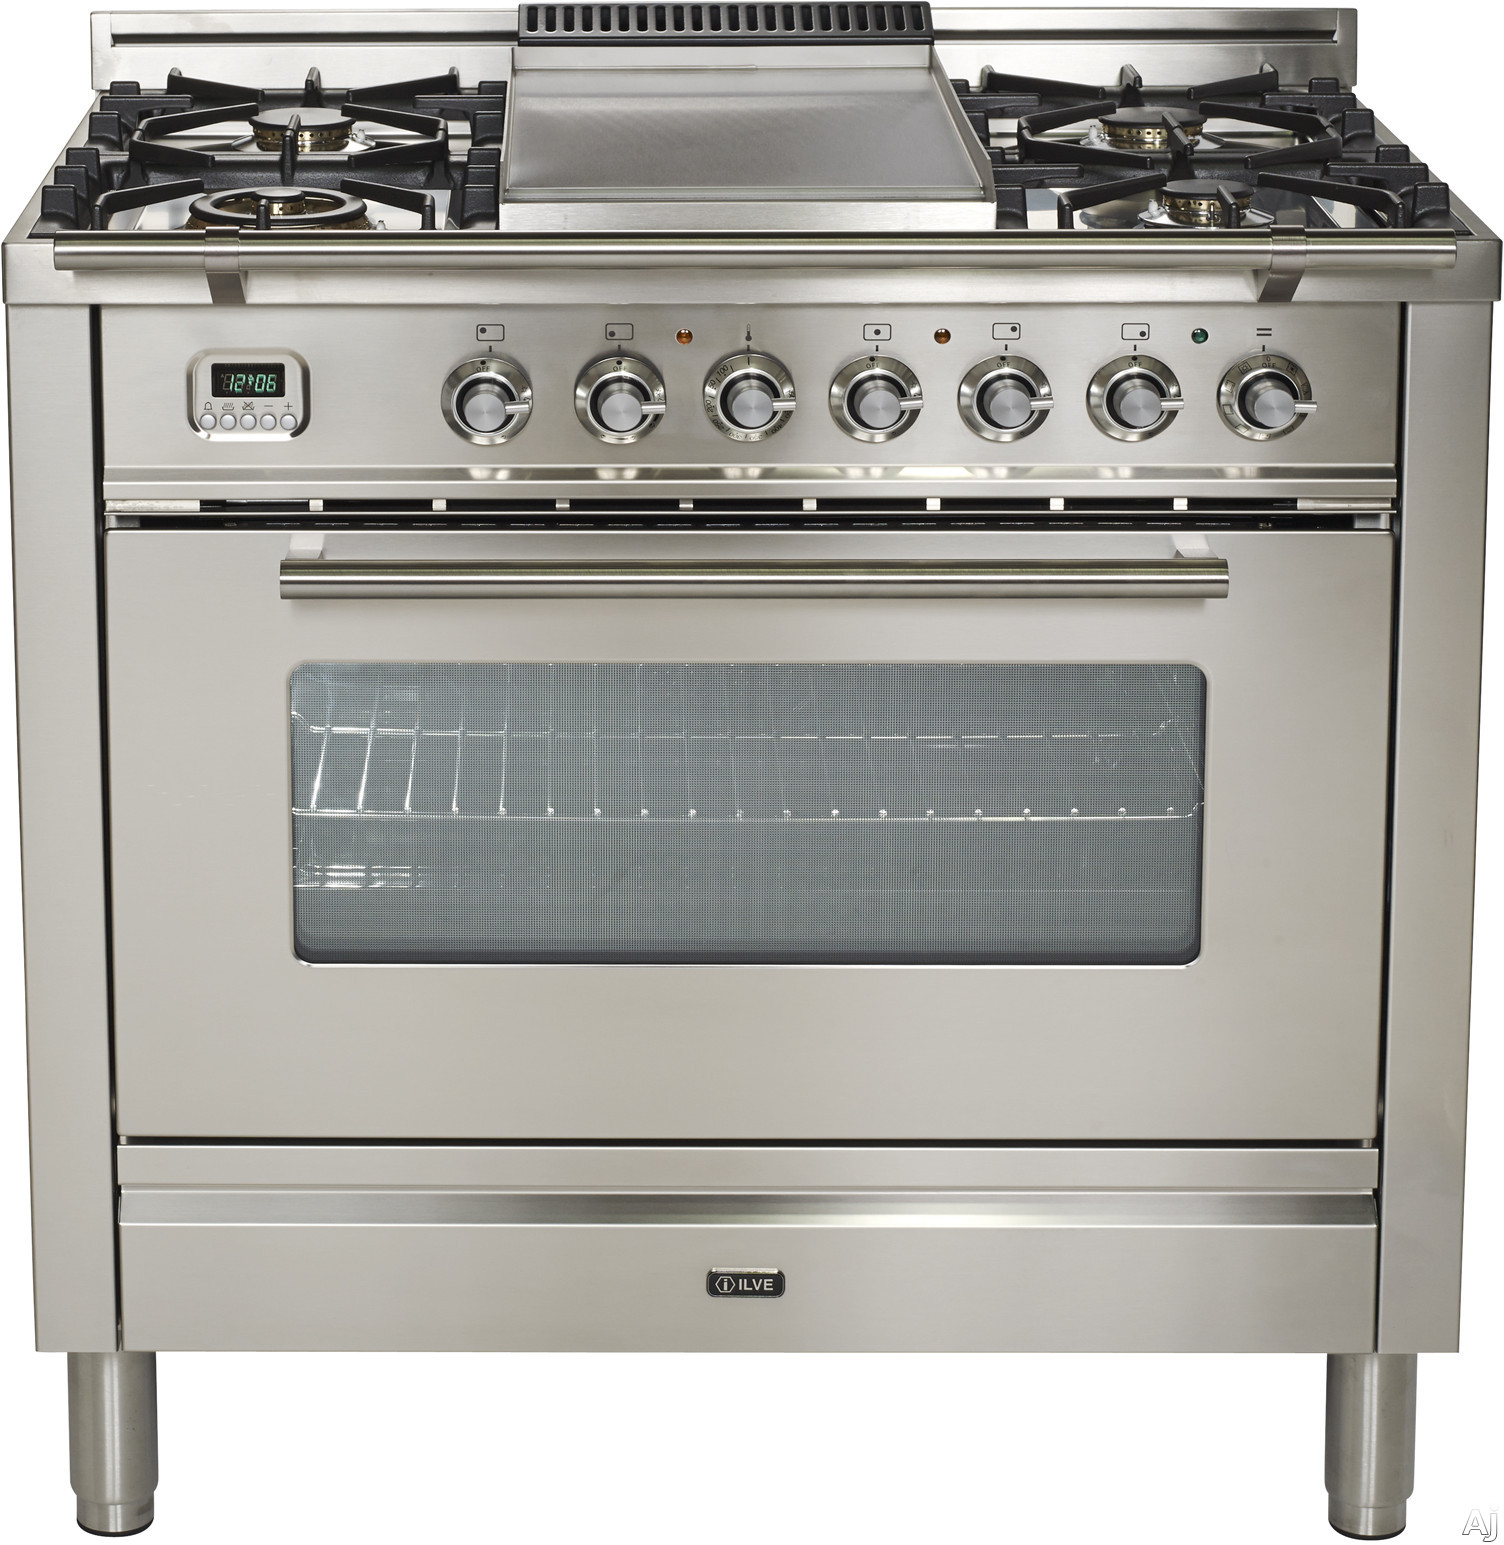 Ilve Proline Series UPW90FDMPI 36 Inch Dual Fuel Range With 5 Burners, Digital Clock and Timer, Warming Drawer, Electronic Ignition, Convection, Cast Iron Grates, Rotisserie and Griddle: Stainless Steel UPW90FDMPI